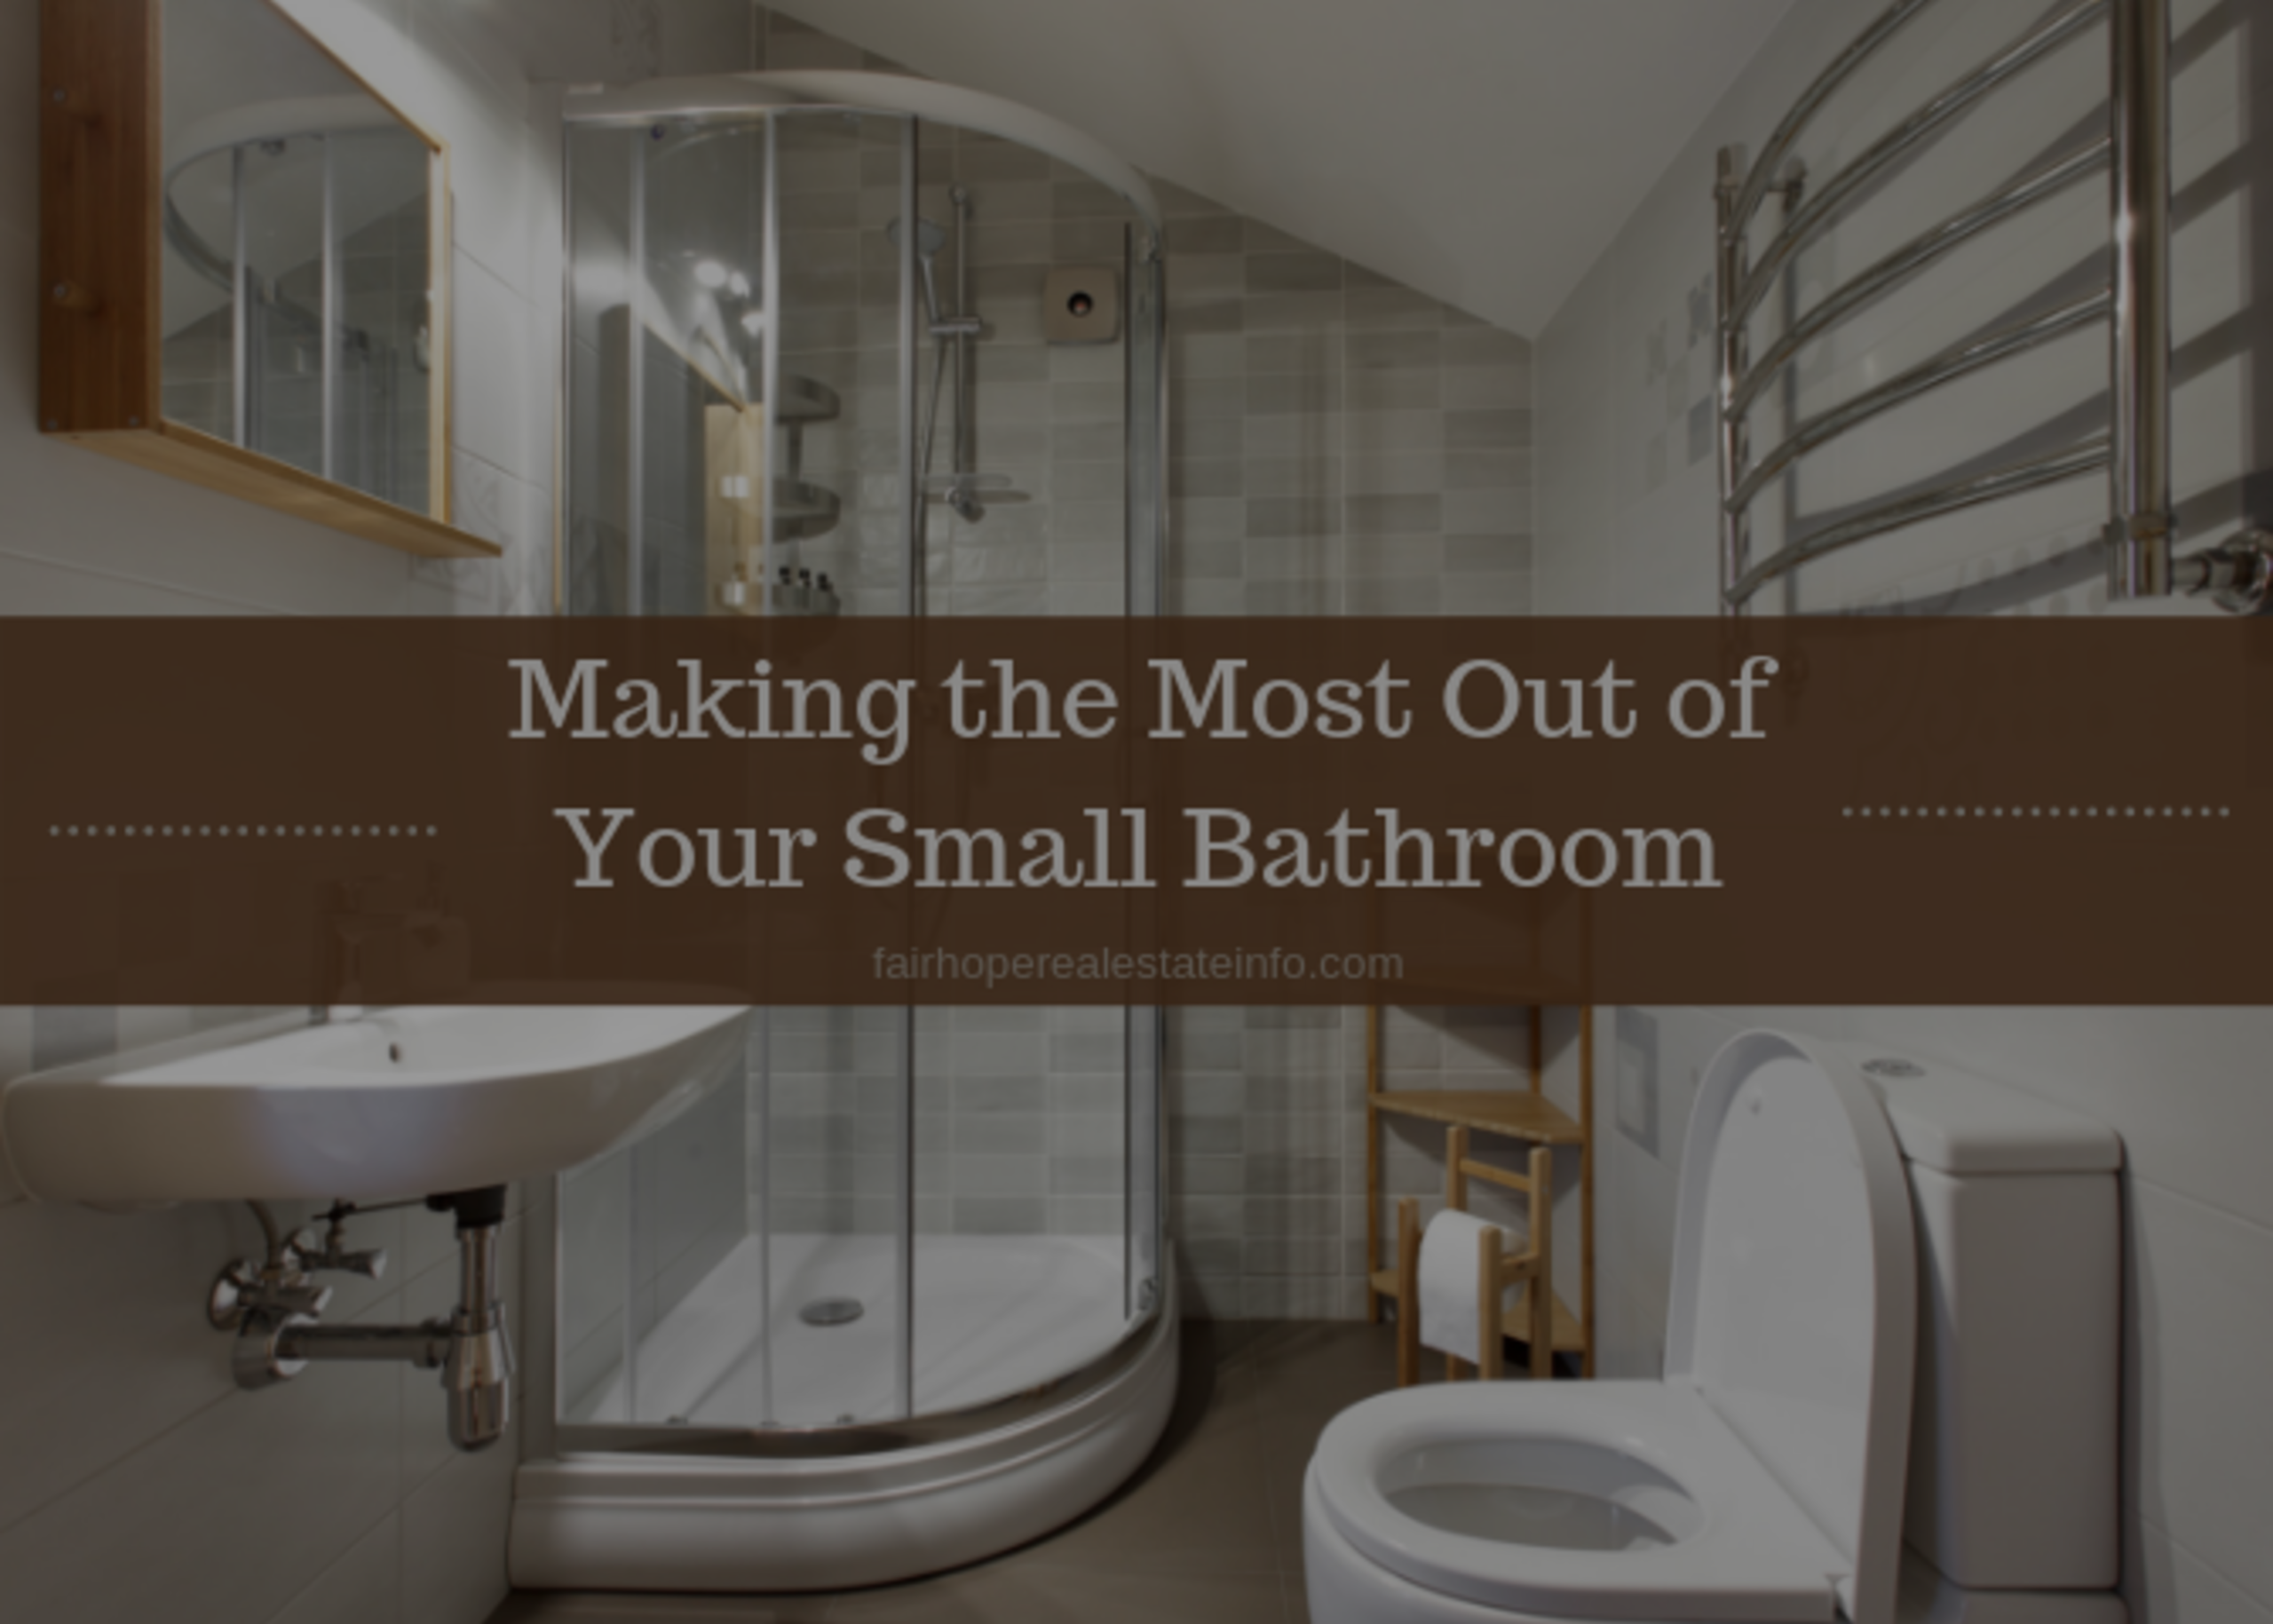 Making the Most Out of Your Small Bathroom